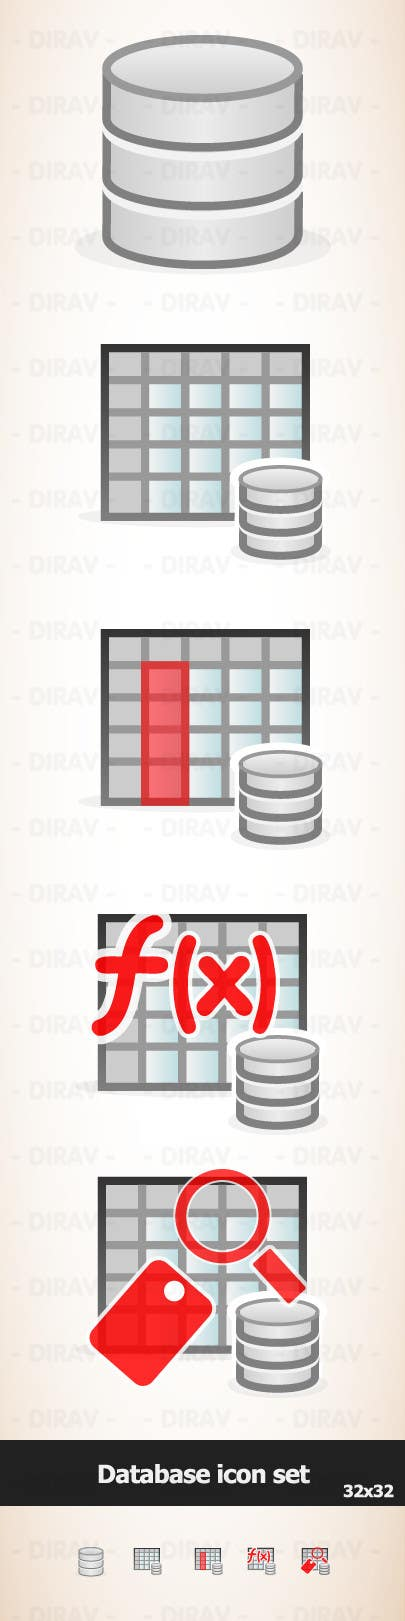 Contest Entry #12 for Design some Icons for database icon set